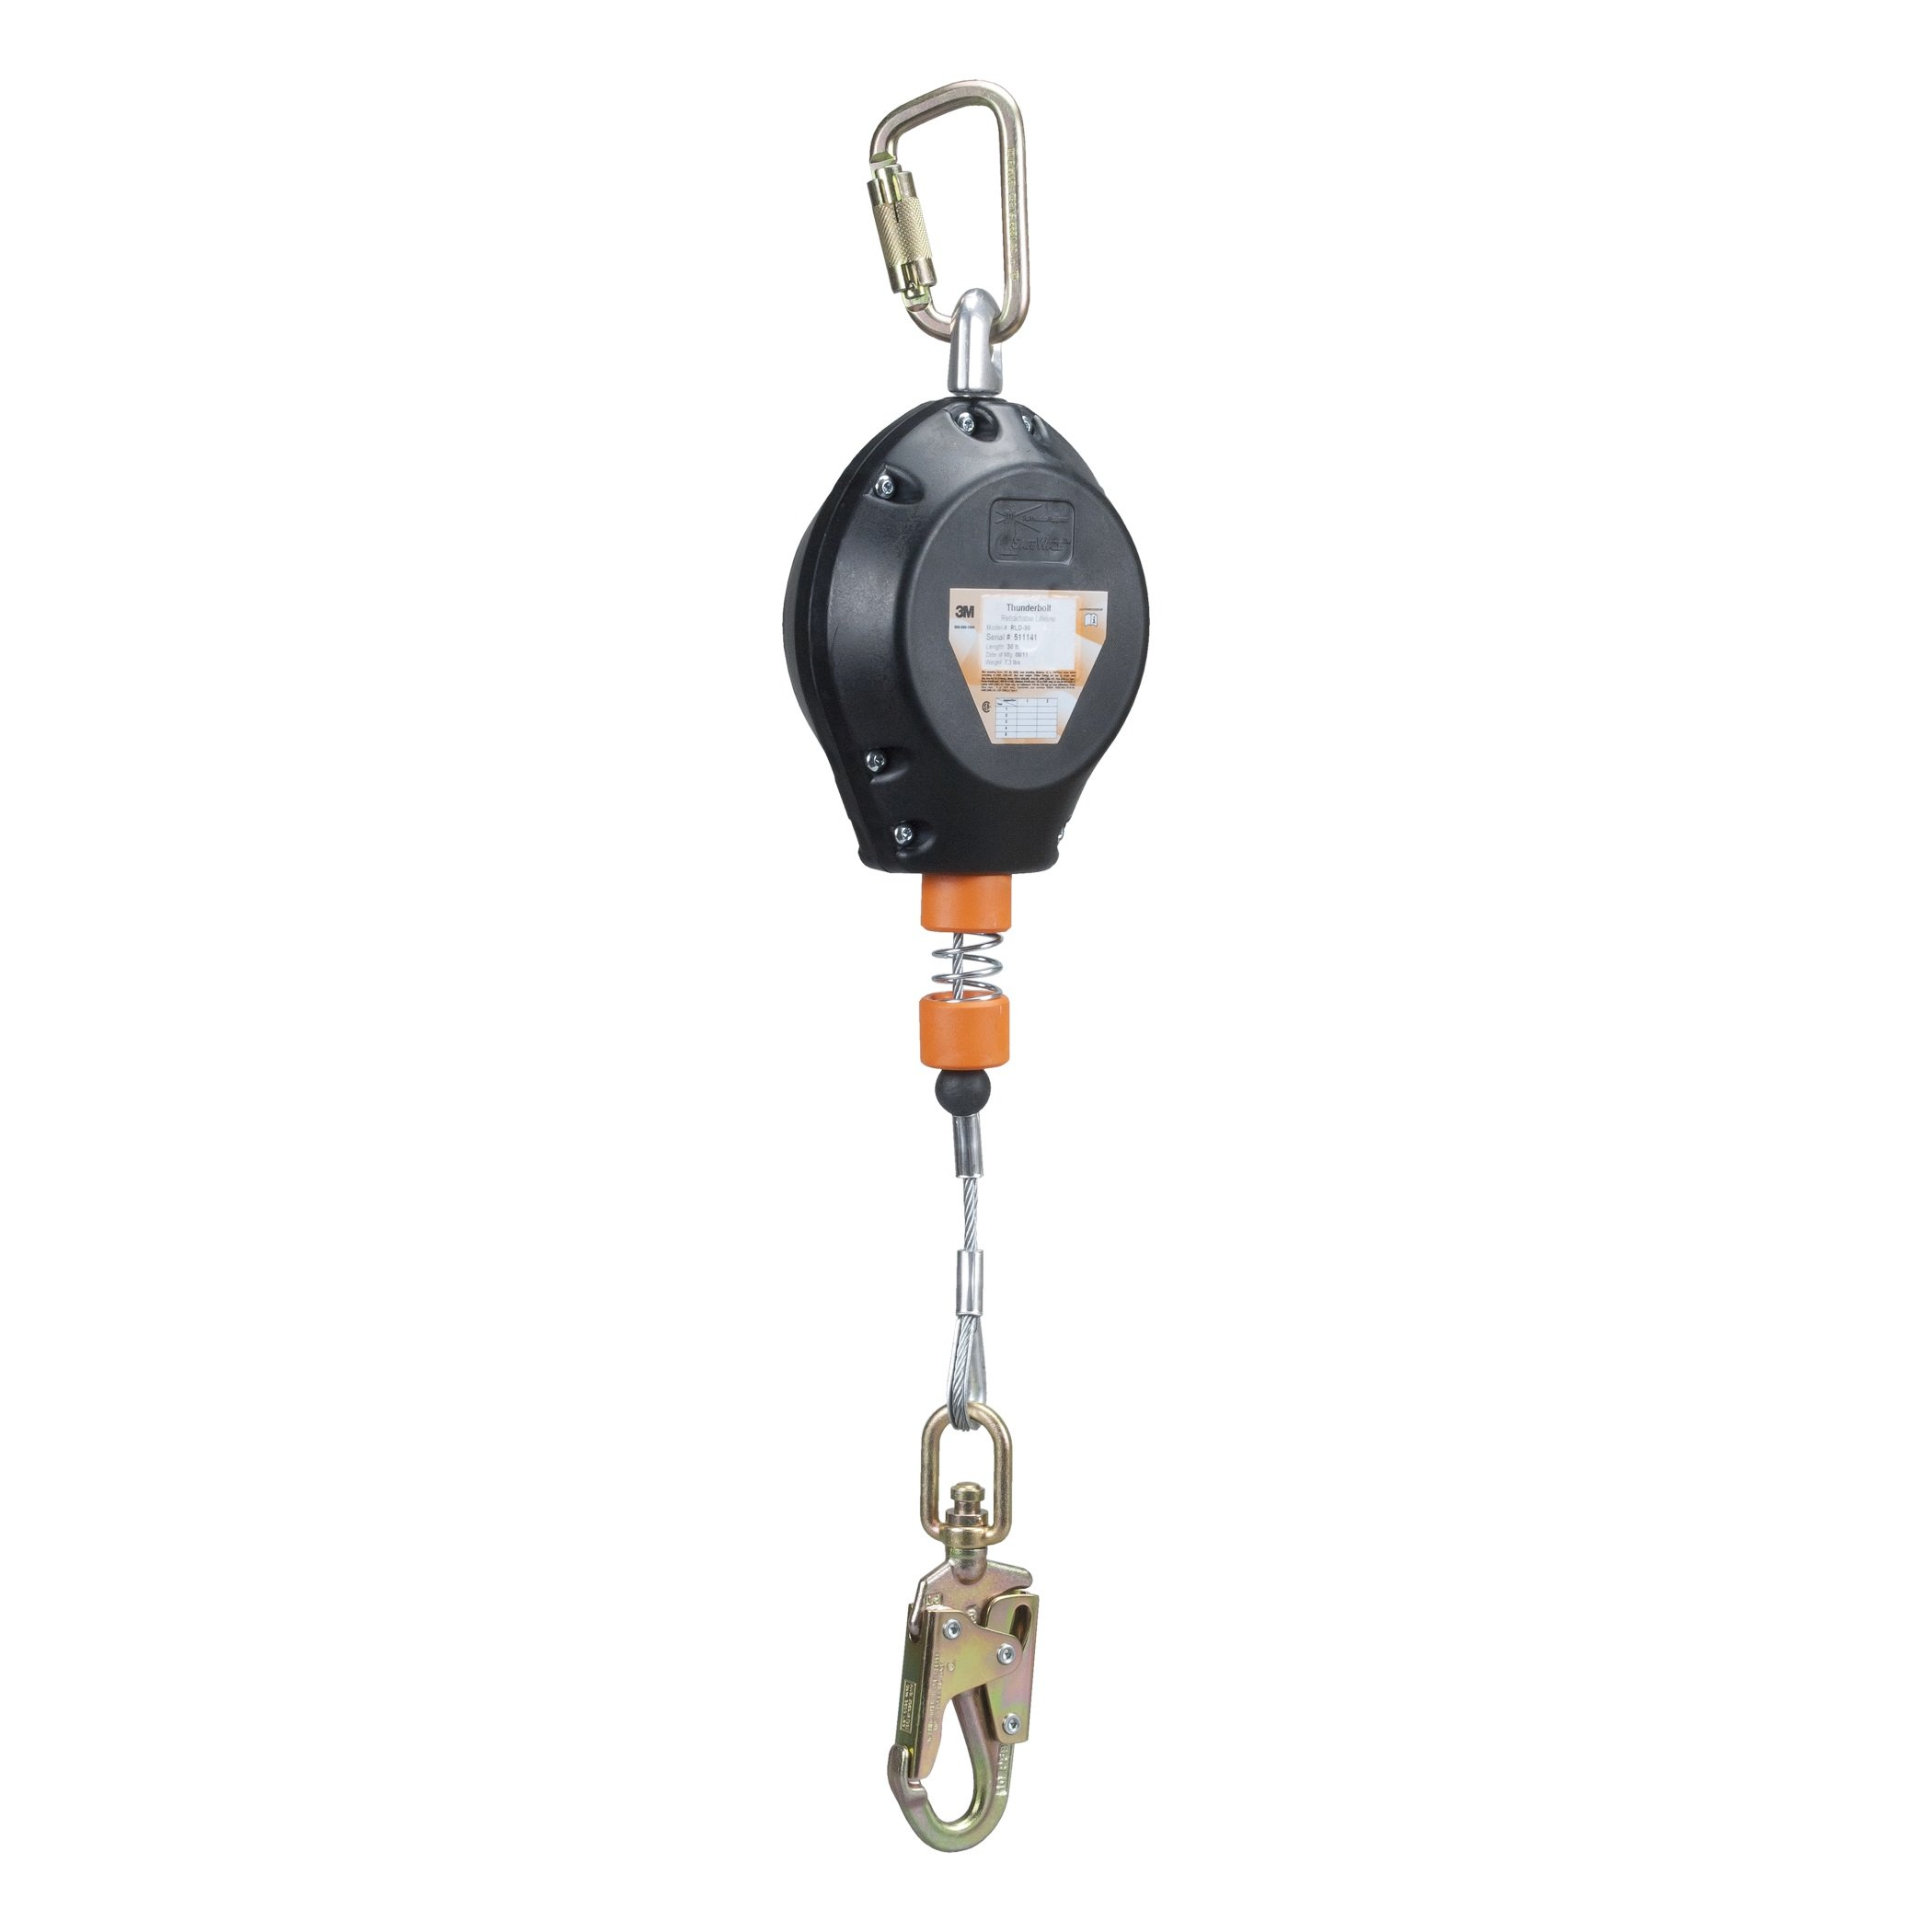 RLD Series RLD-20 Self-Retracting Lanyard, 20 foot cable